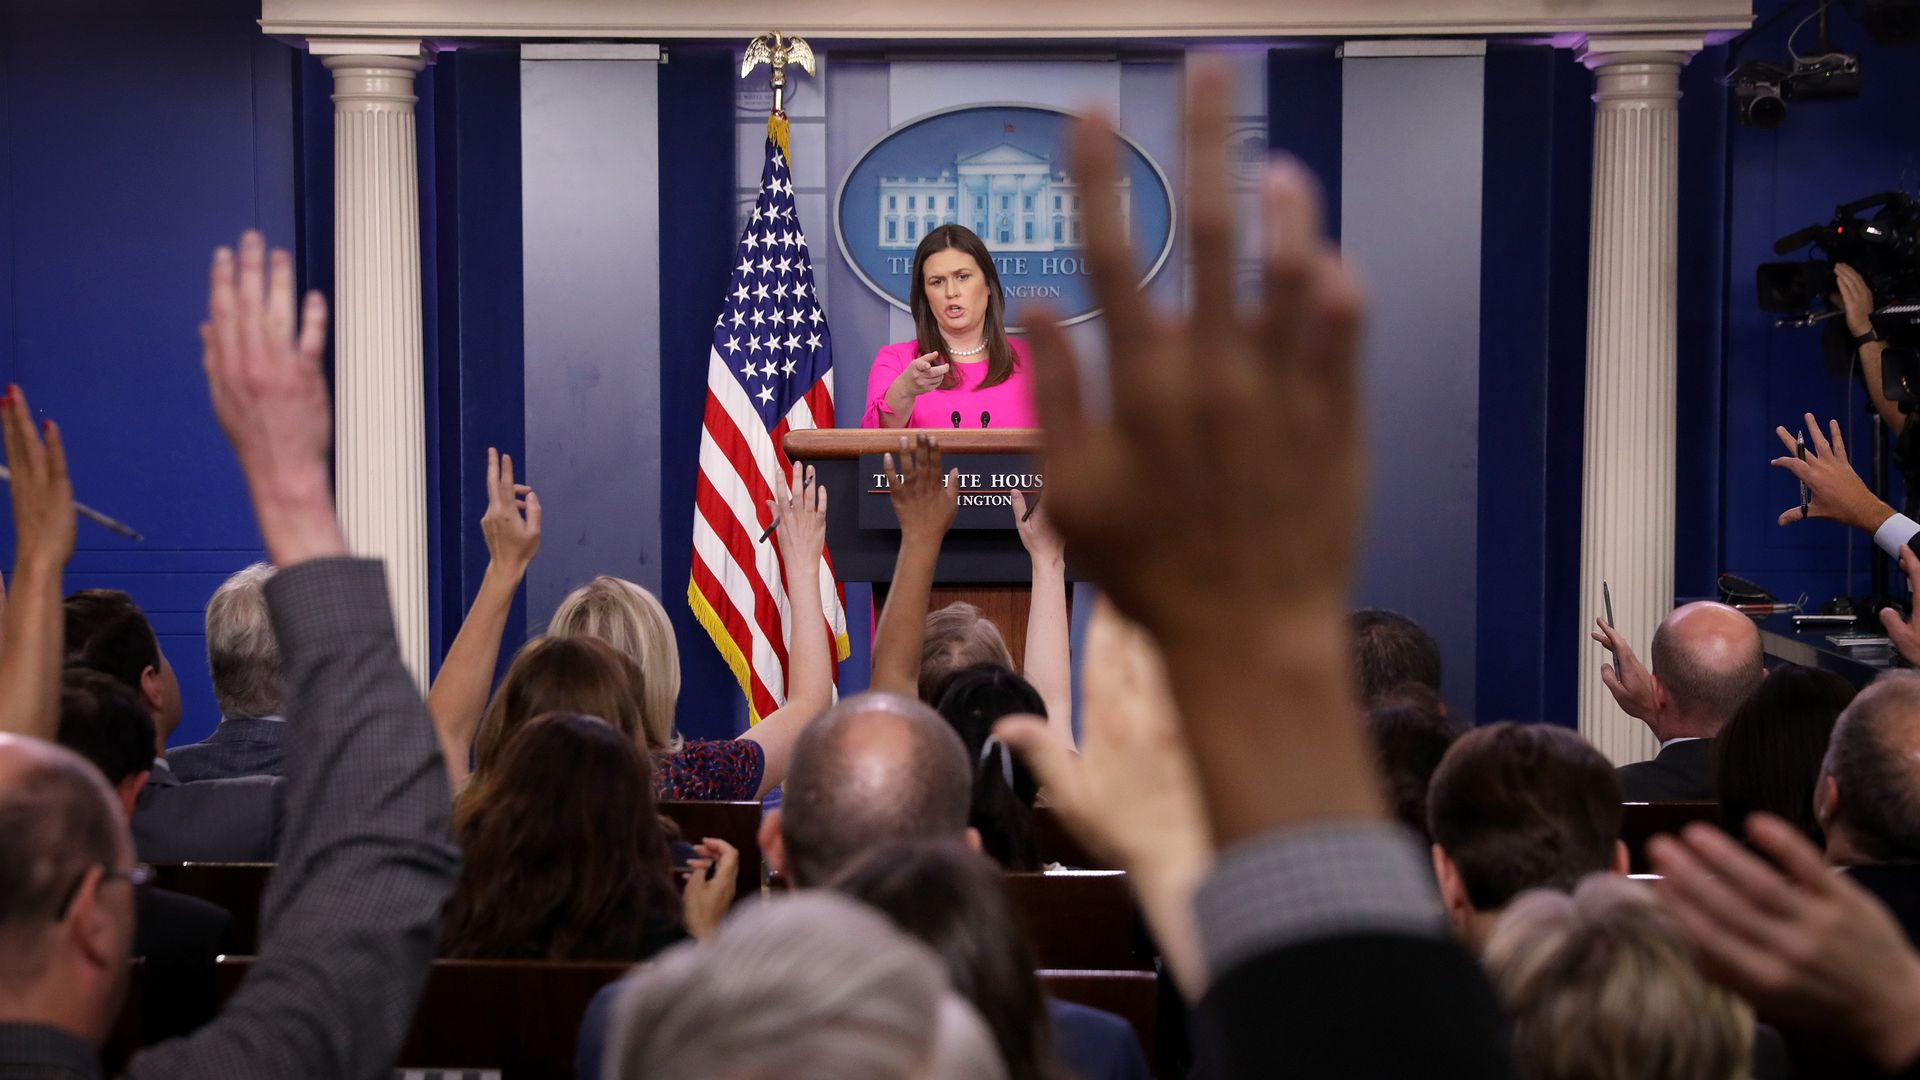 White House press secretary Sarah Huckabee Sanders answers questions during a White House briefing June 25, 2018 in Washington, DC.